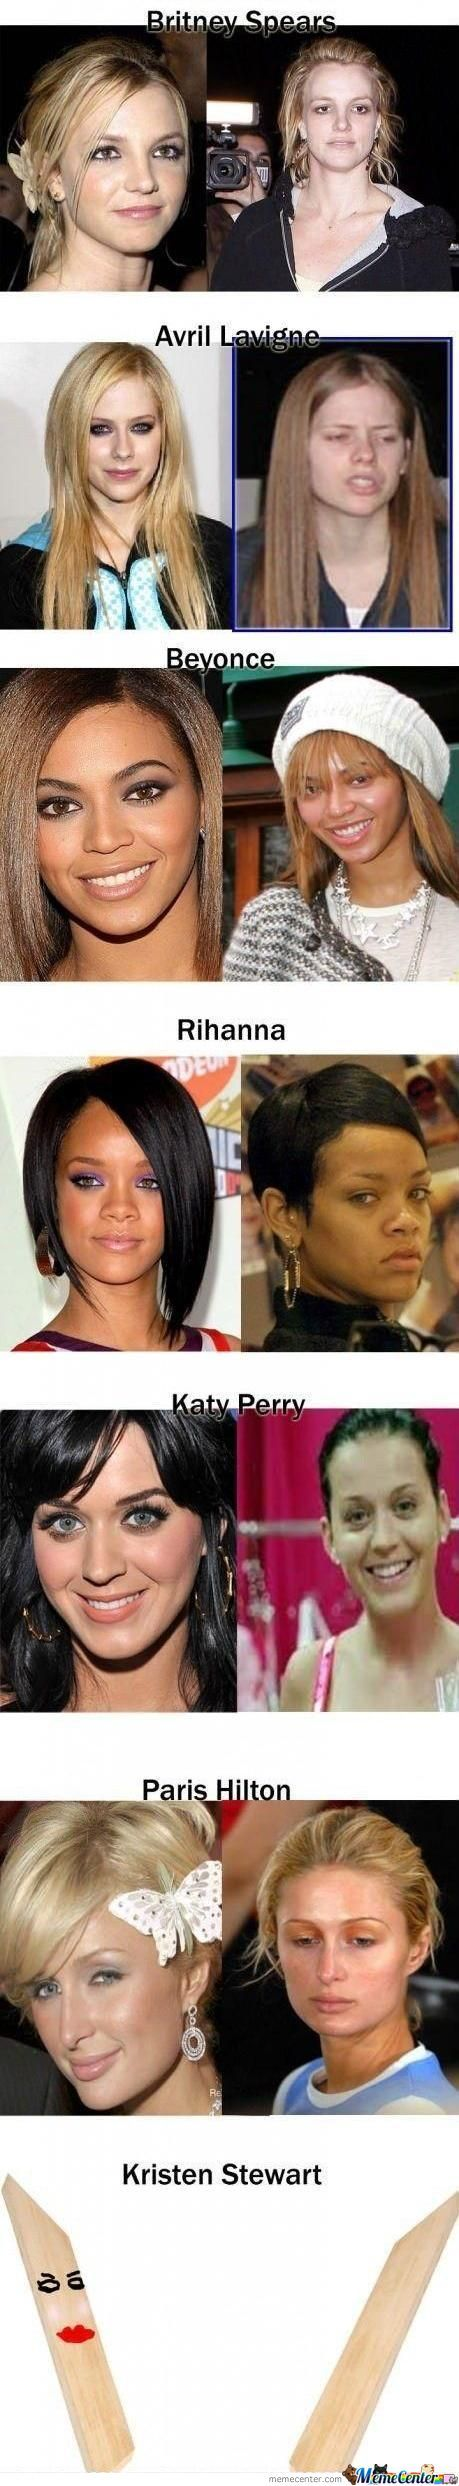 Just Some Celebritys Without Makeup ...